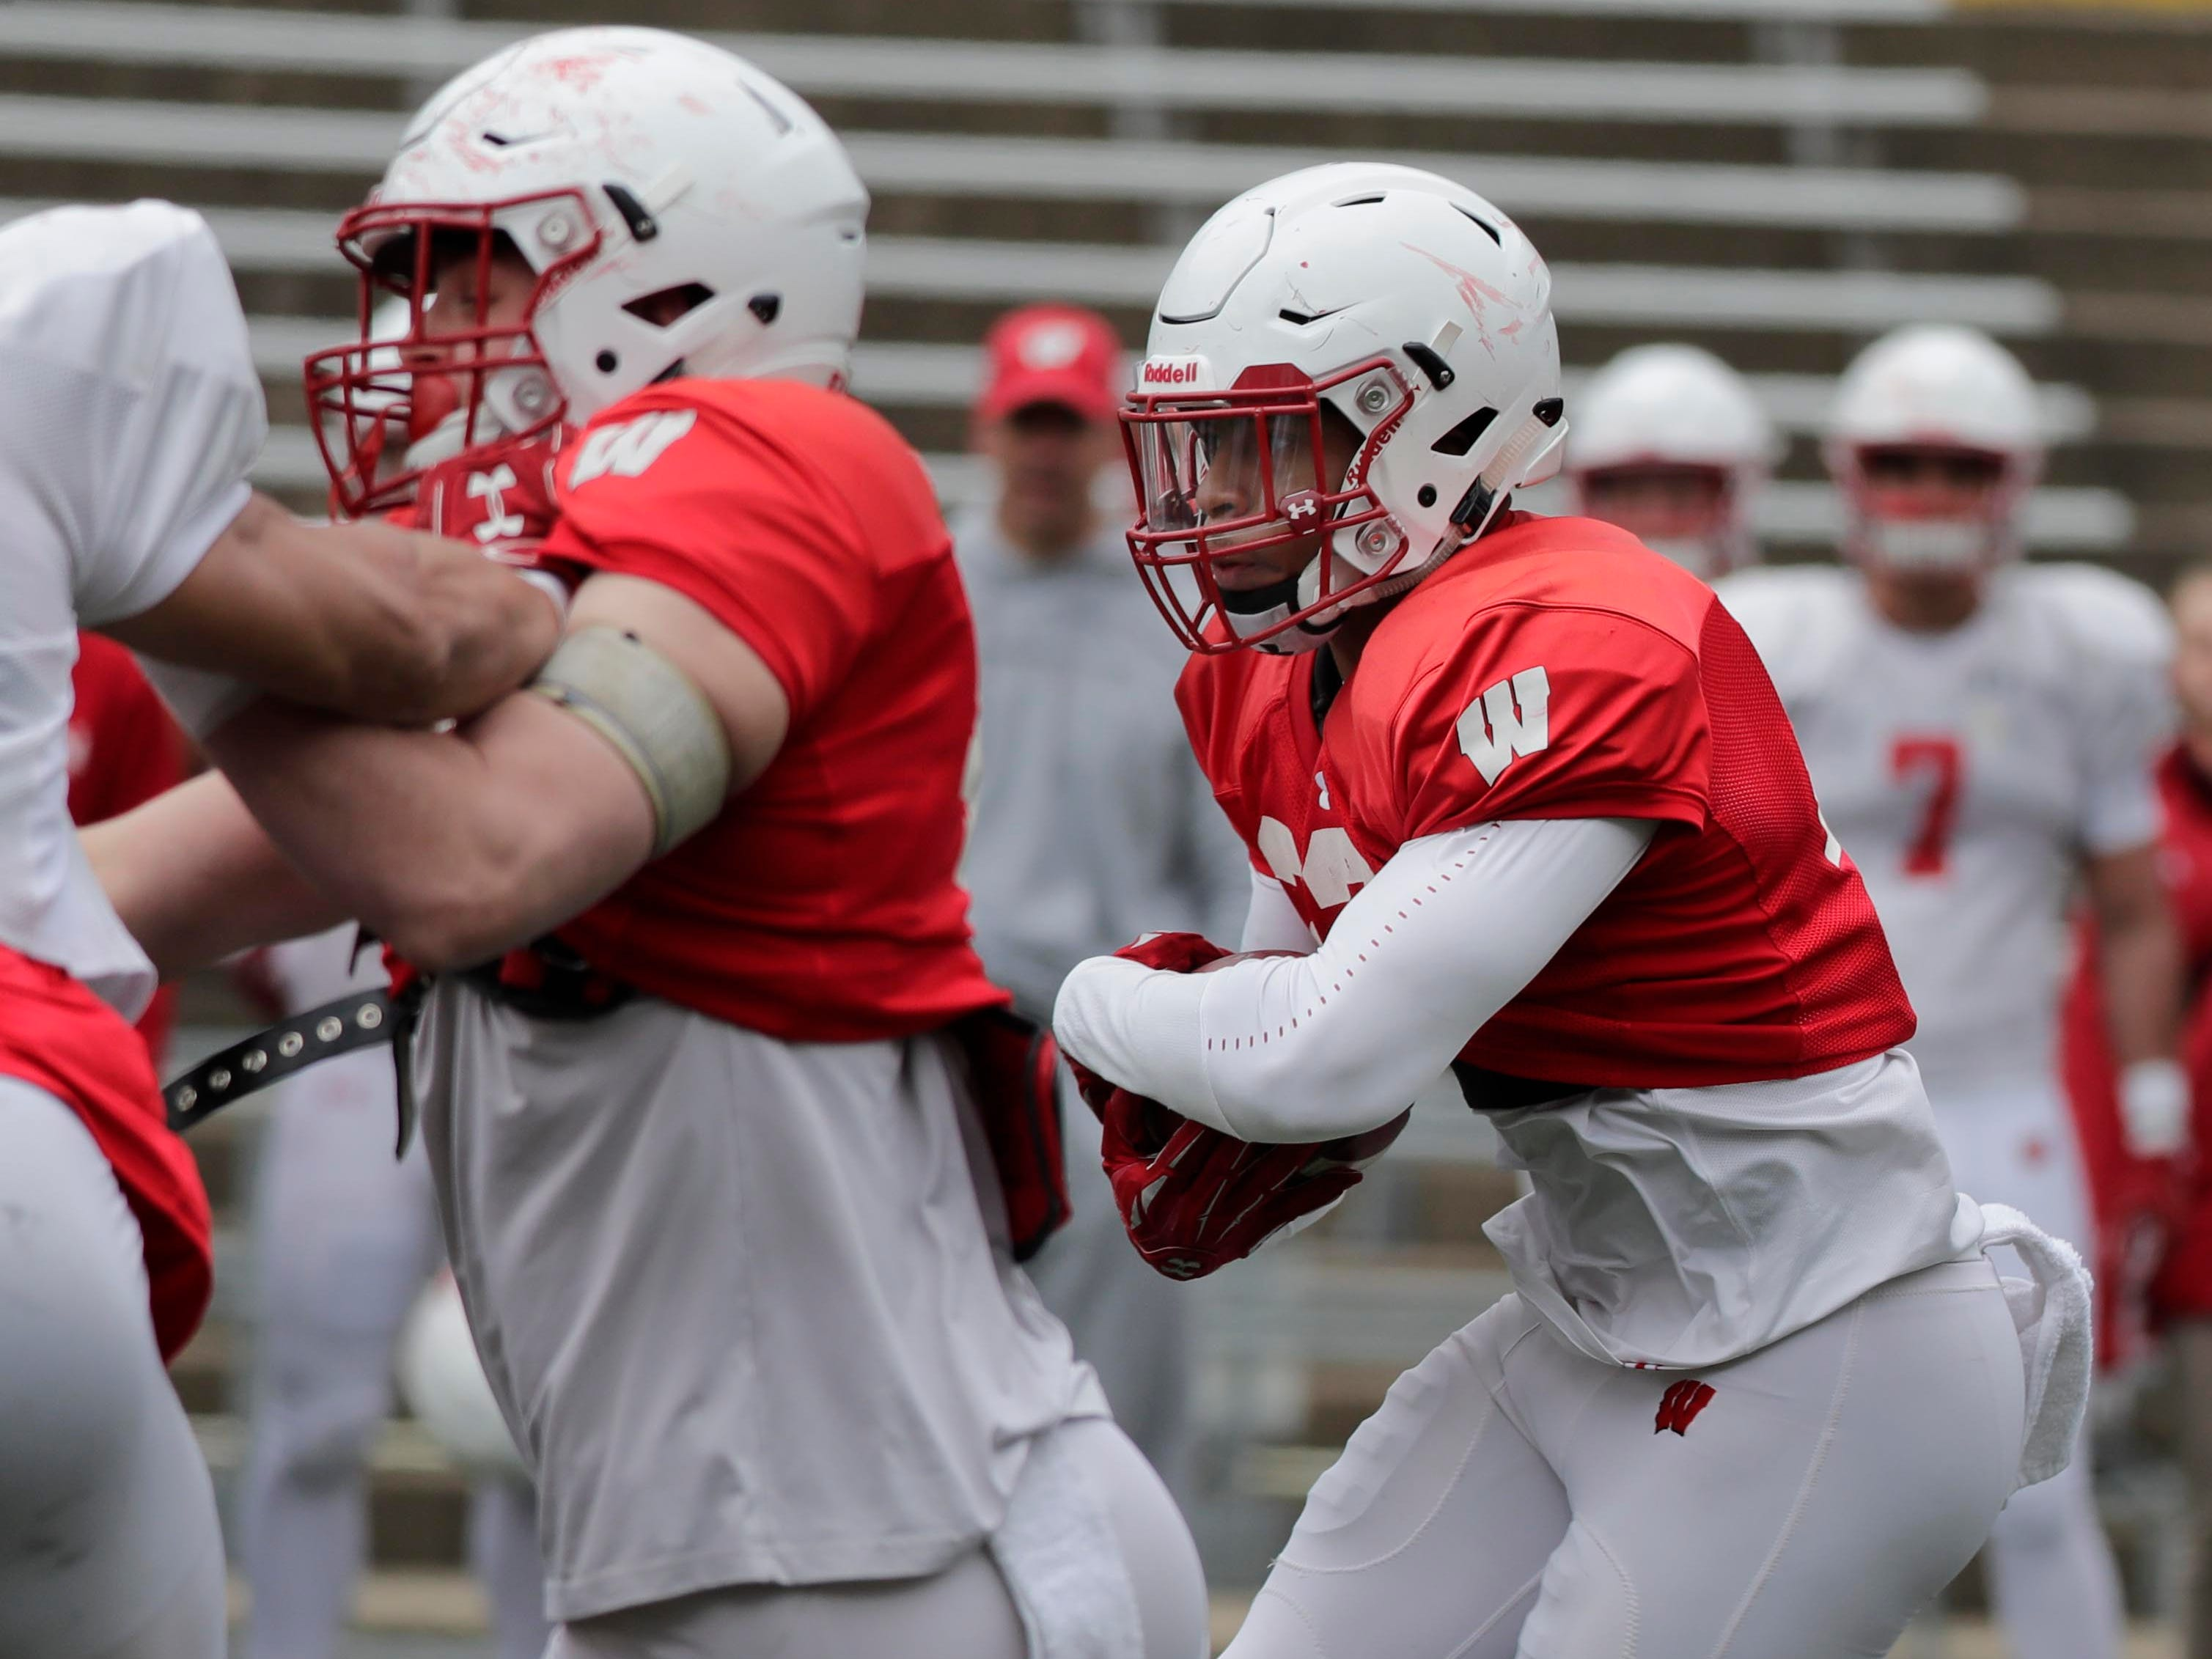 Badgers running back Jonathan Taylor looks for an opening during practice.